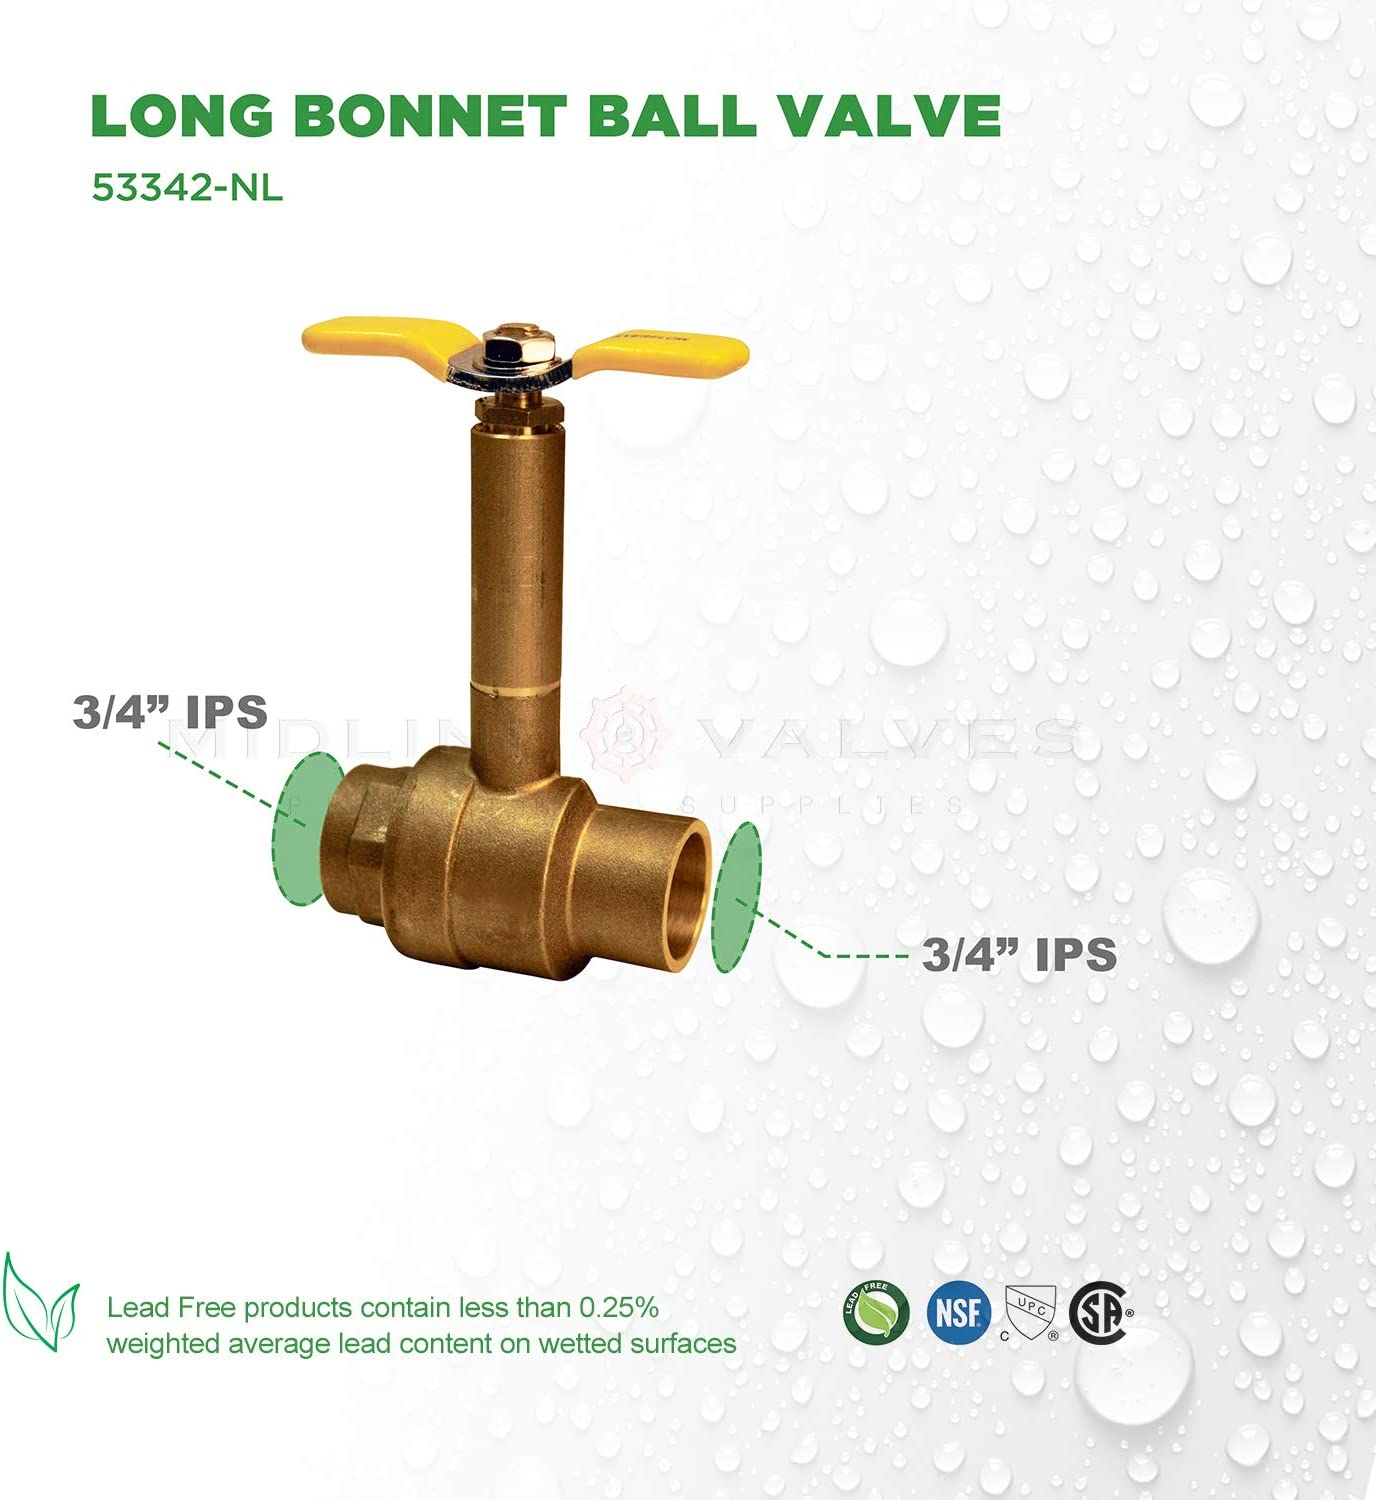 Midline Valve 75563 Premium Brass Ball Valve Sweat Connections Long Bonnet with T-Handle with 3//4 in